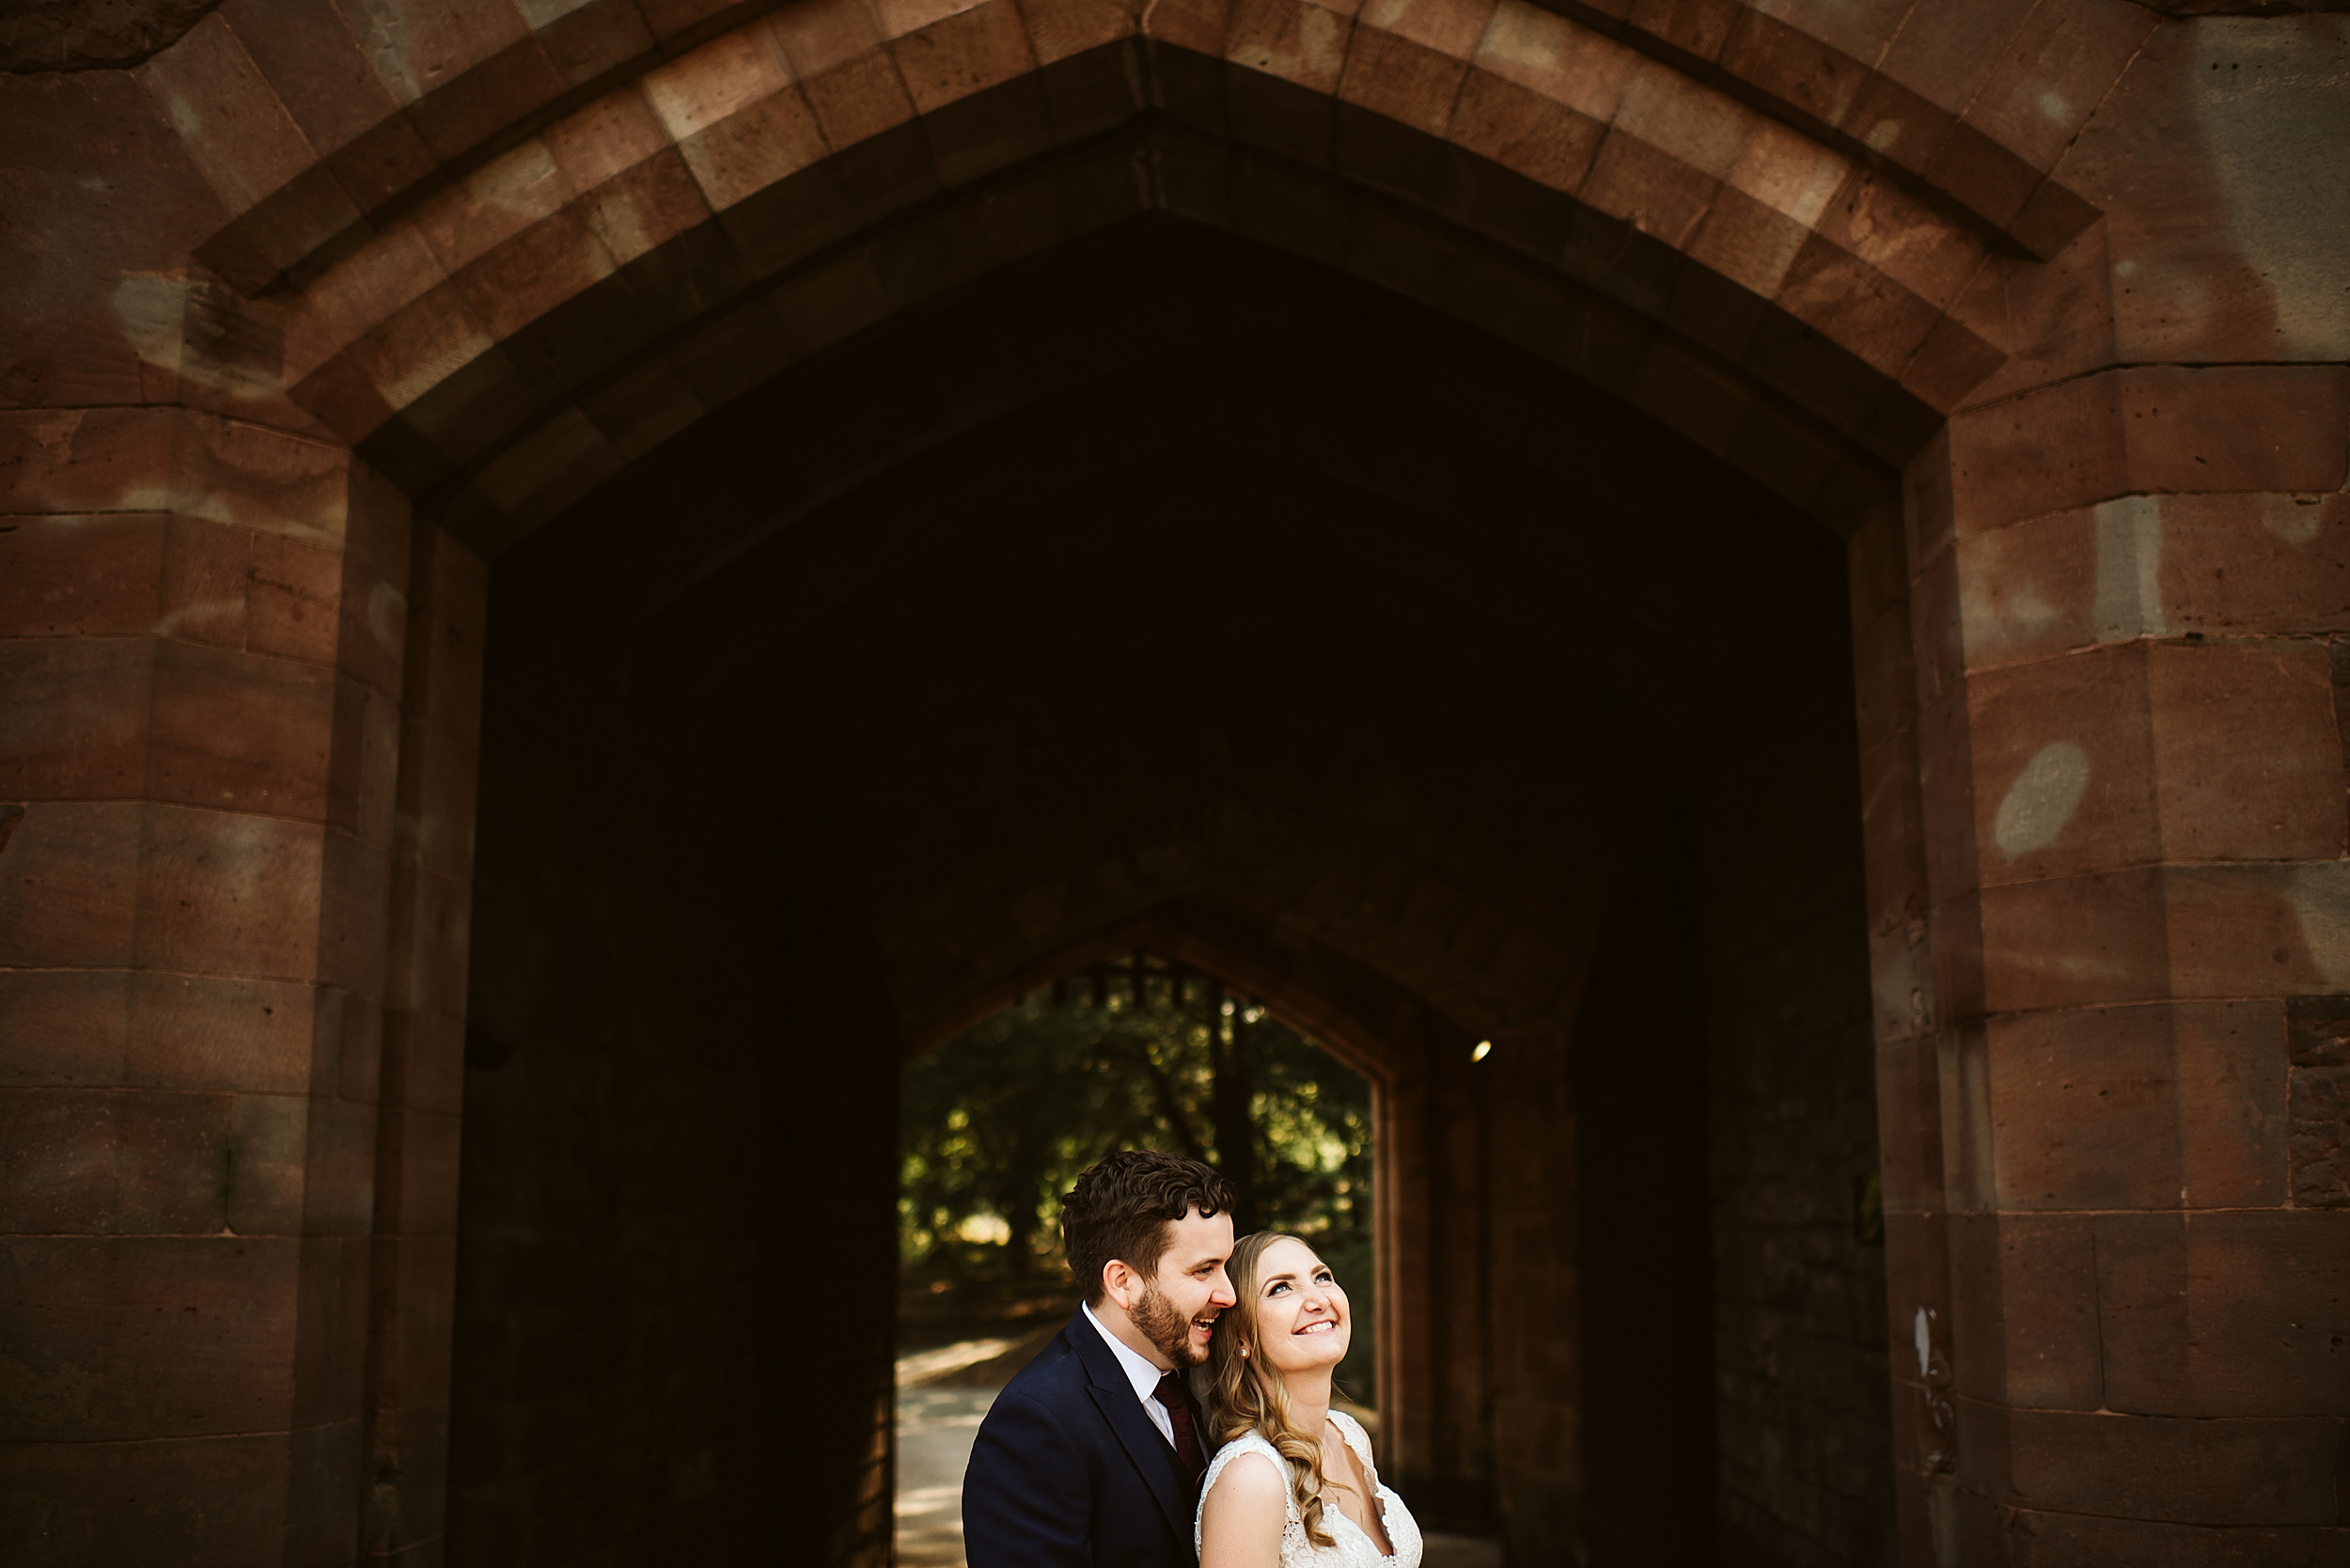 Peckforton_Castle_Cheshire_Toronto_Wedding_Photographer_UK_Destination_Wedding_0107.jpg